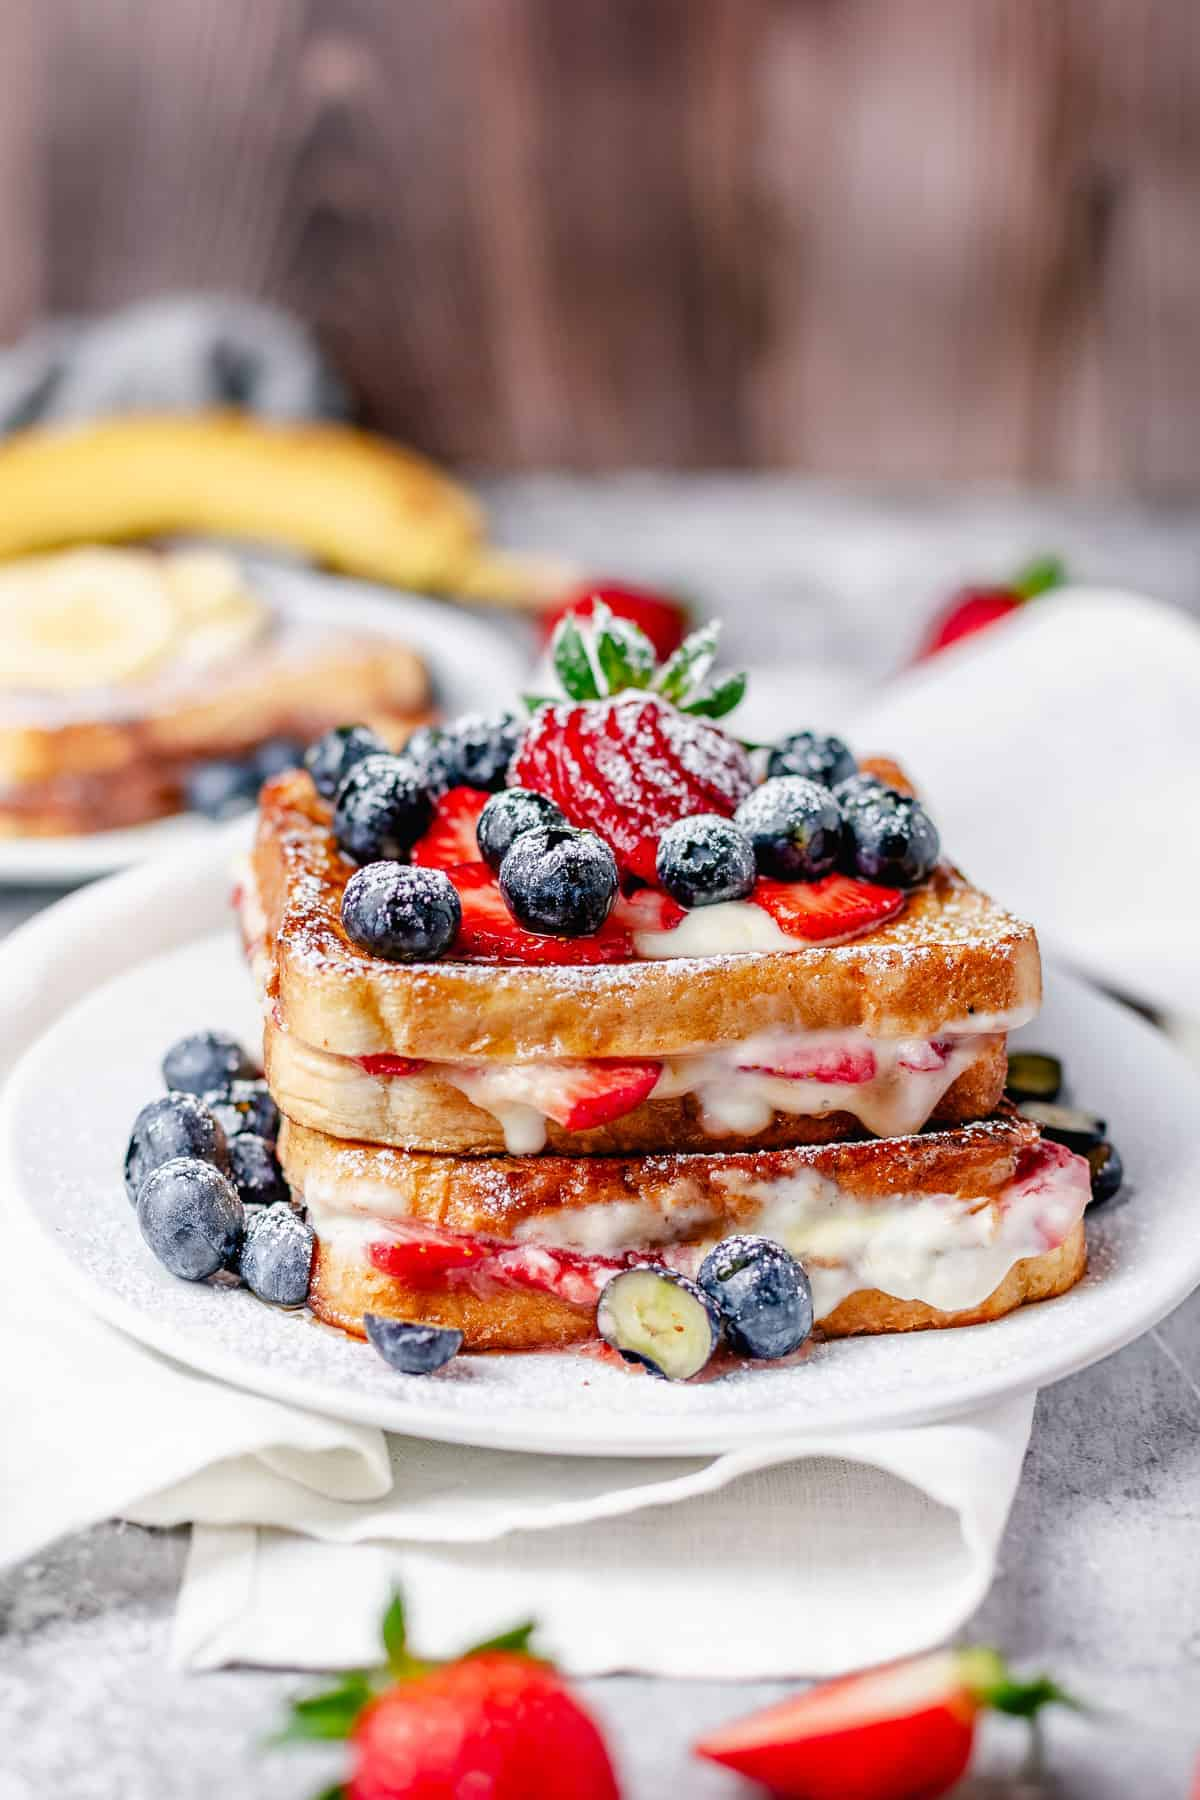 strawberry cream cheese stuffed french toast stacked on a plate